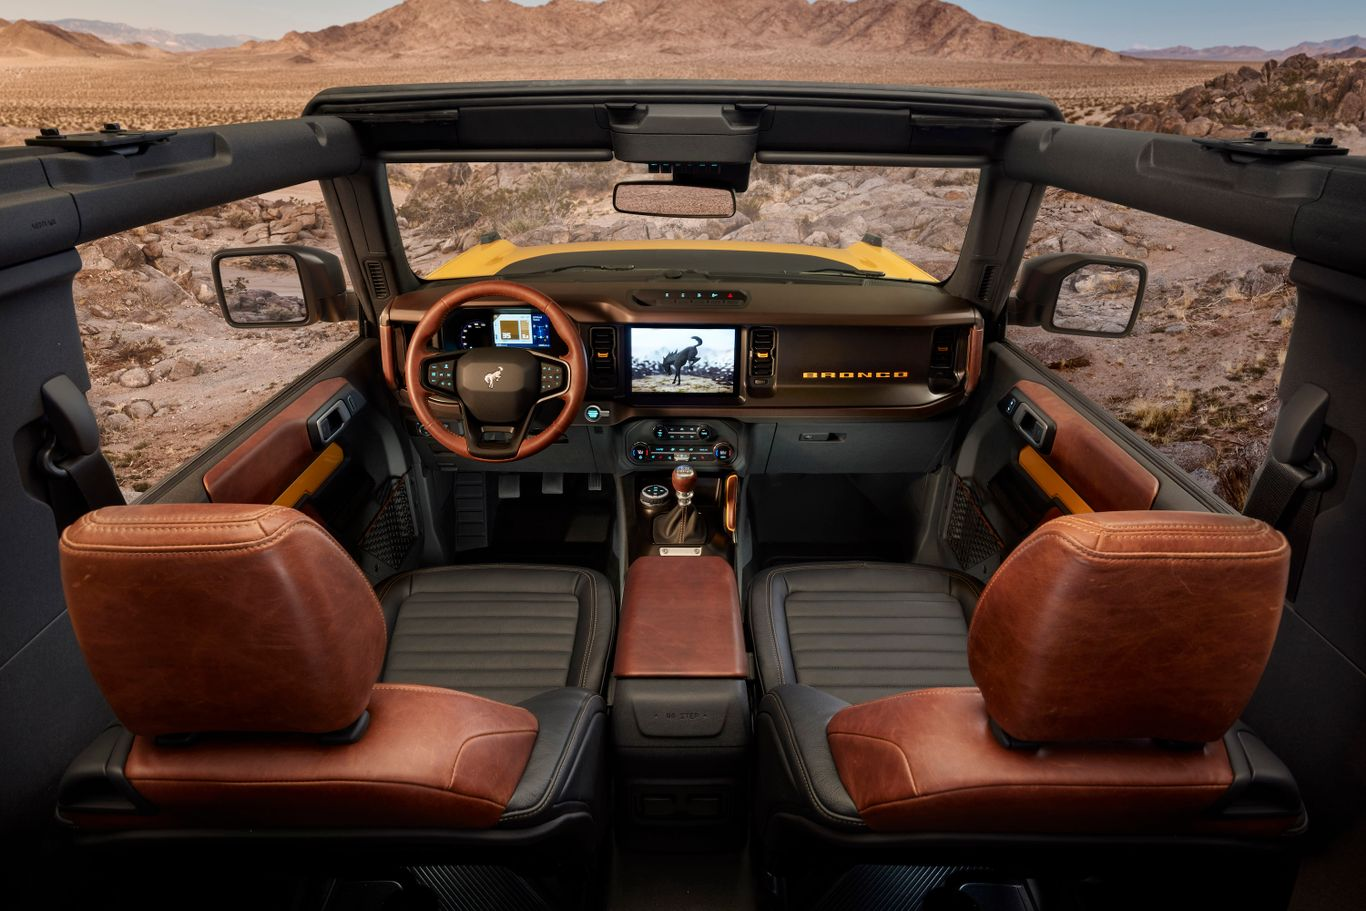 Ford - The 2021 Ford Bronco Is Finally Here To Have A Scrap With The Wrangler - News